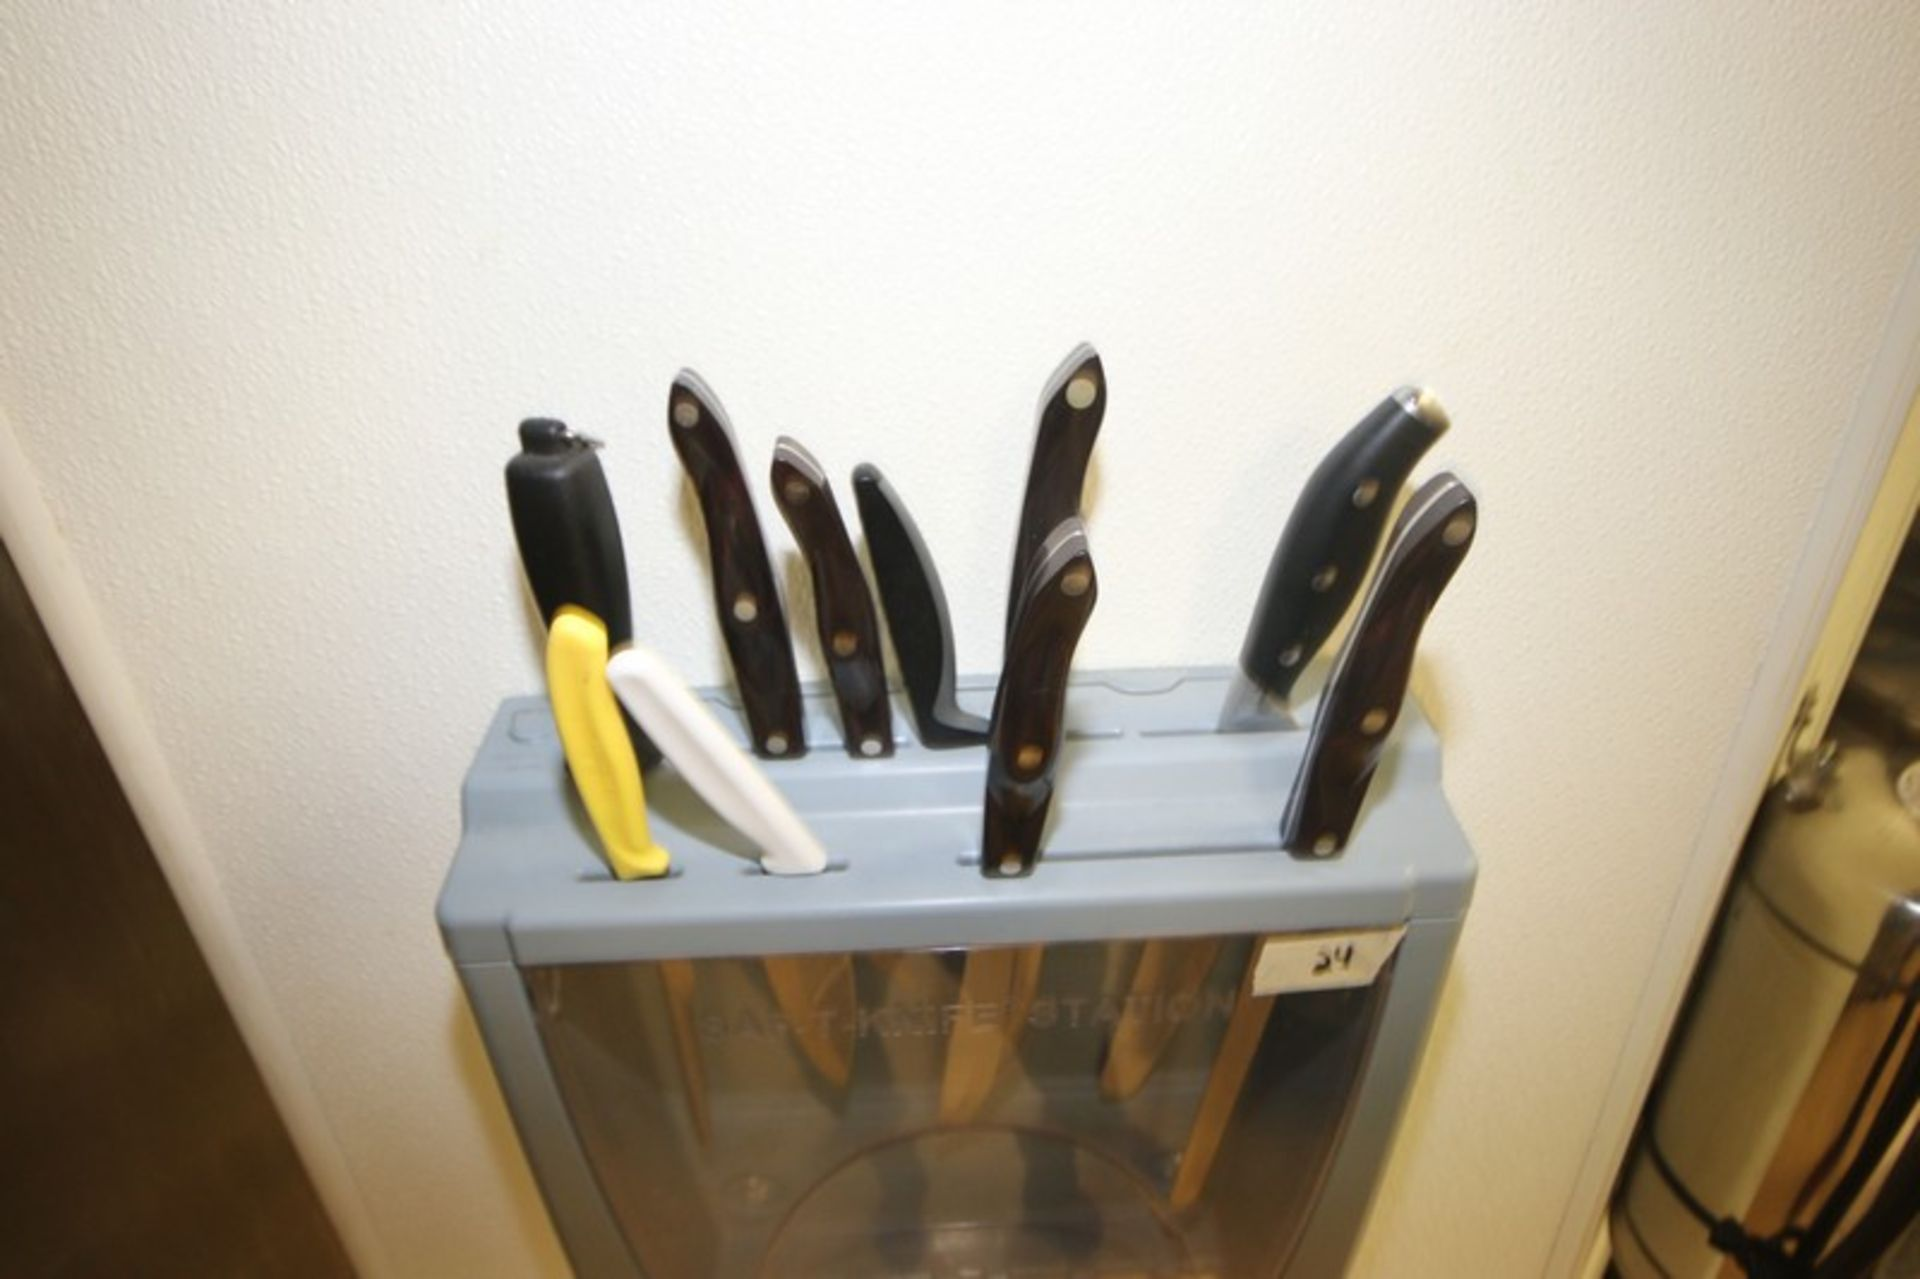 San Jamar Saf-T-Knife Station, Wall Mounted with Multiple Top Knife Inserts (Located in McMurray, - Image 2 of 2